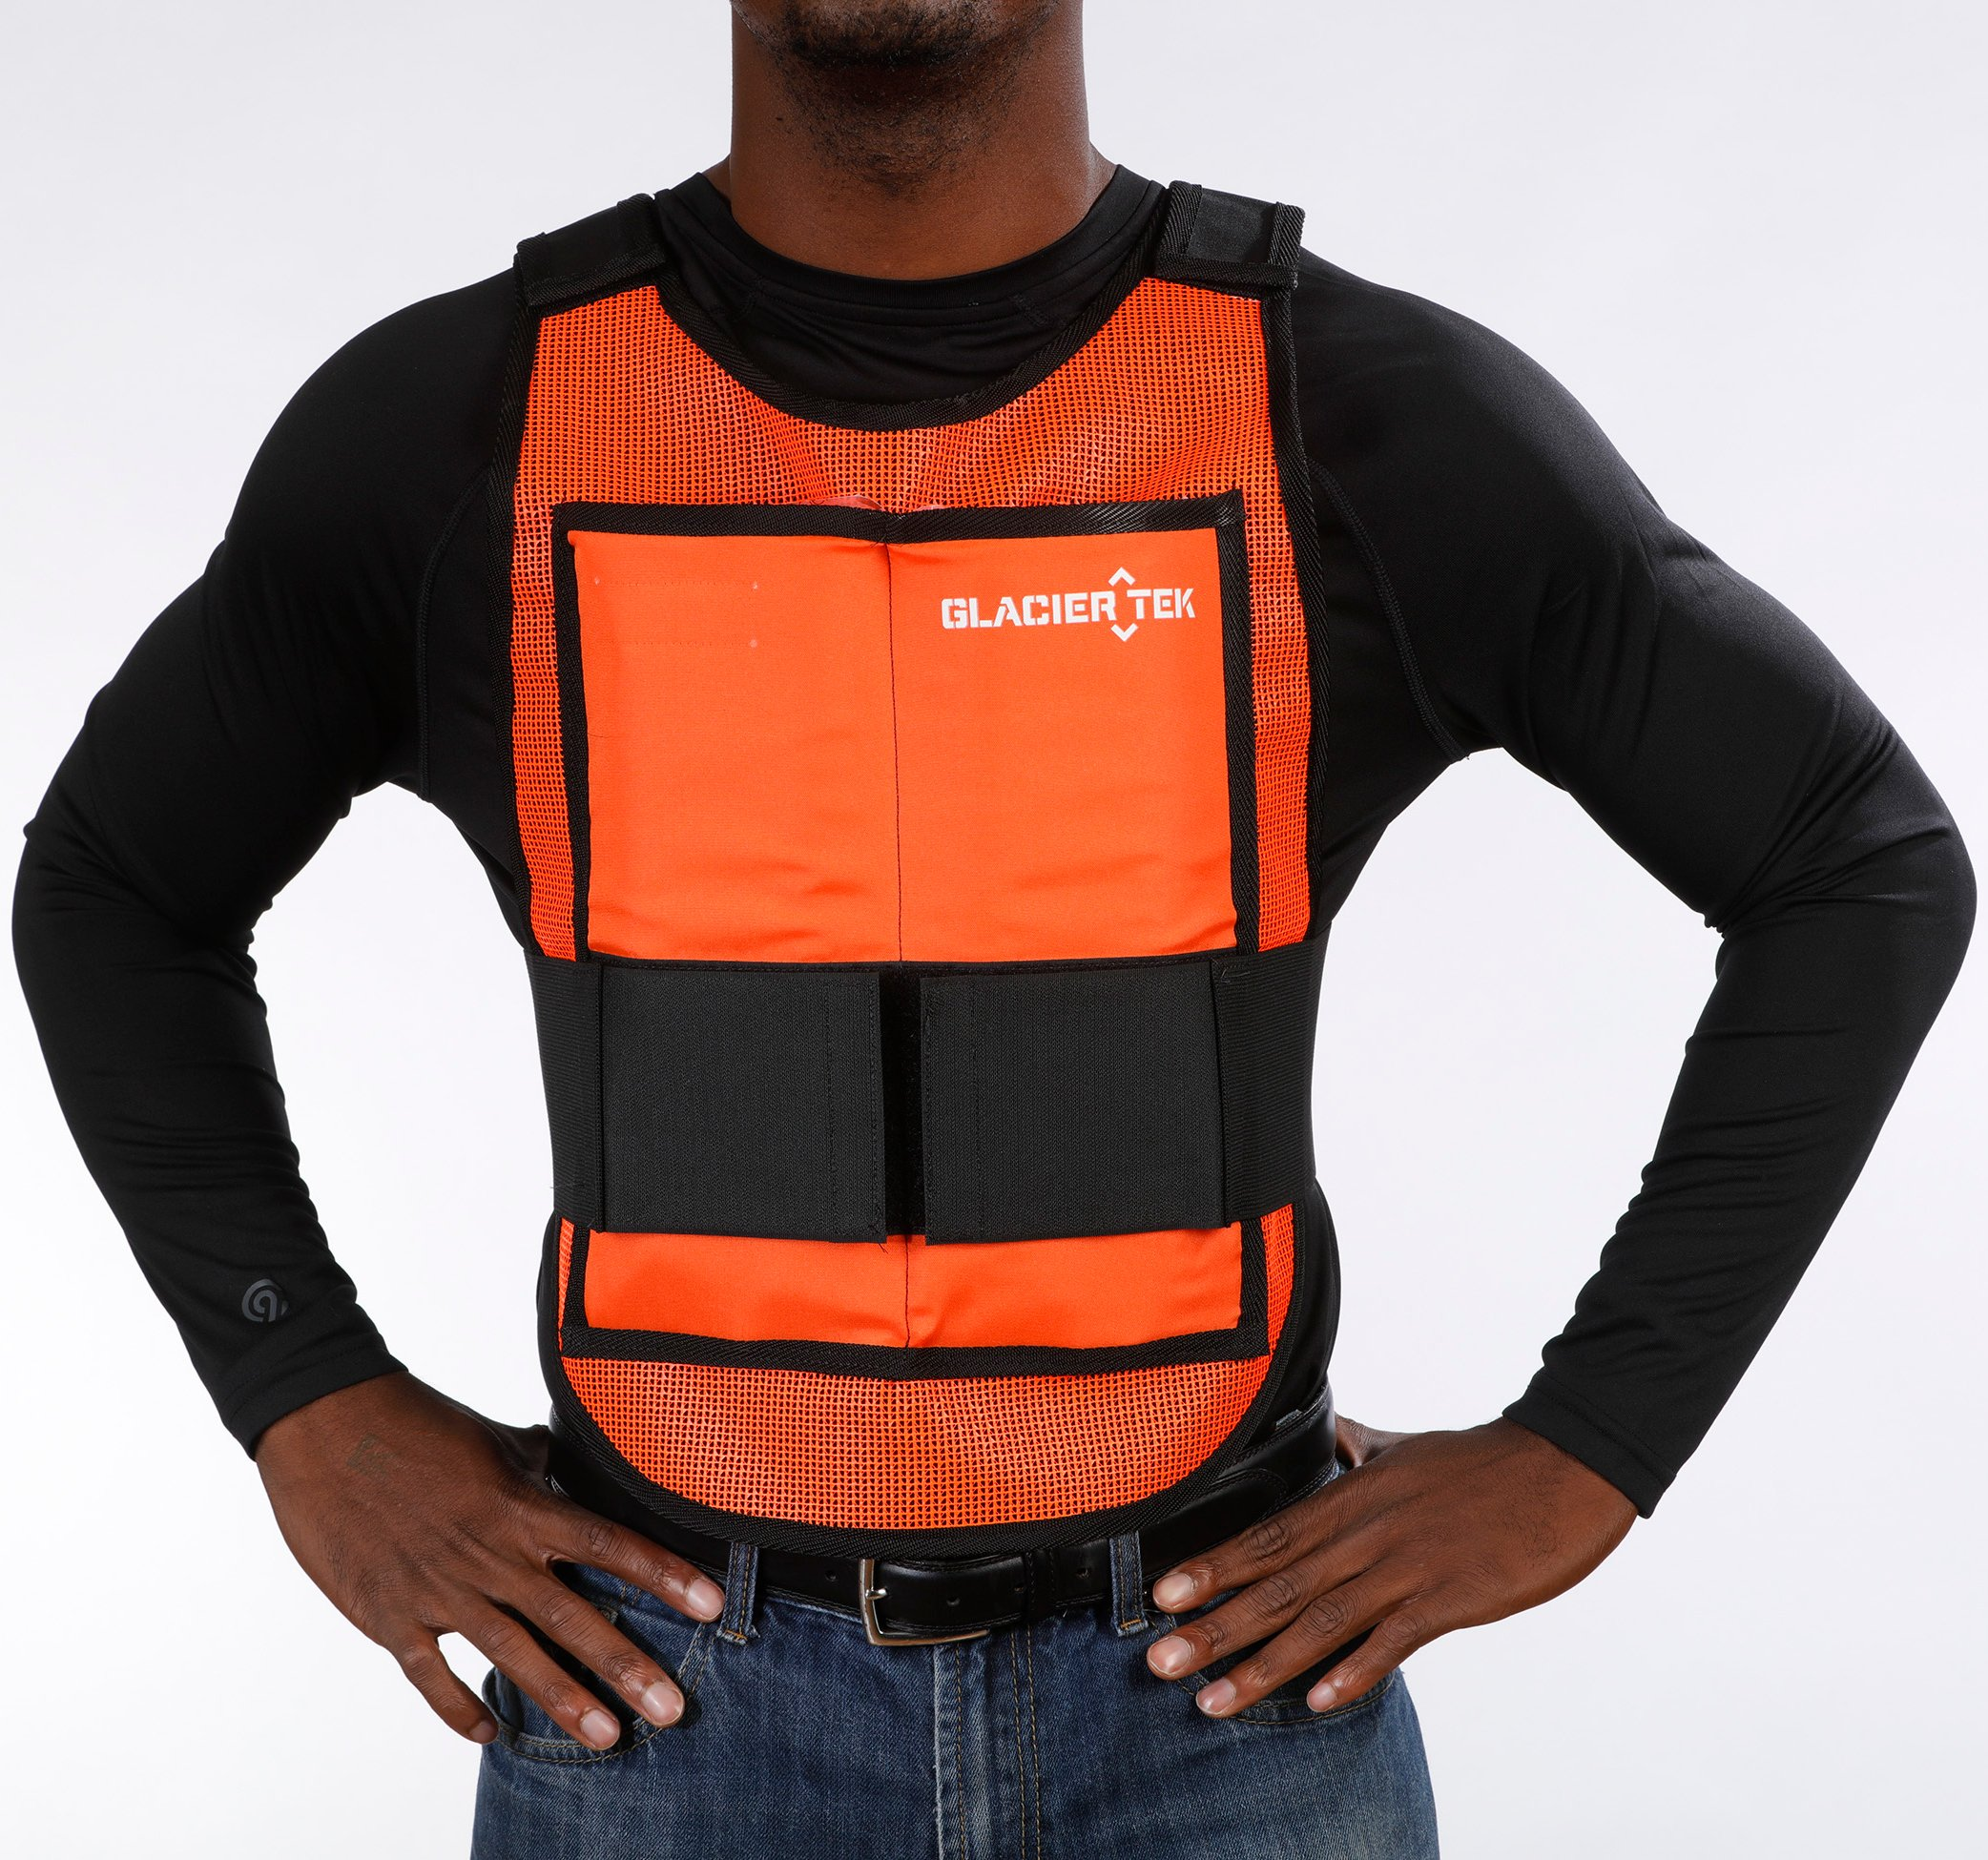 Glacier Tek Classic Cool Vest with Set of 8 Nontoxic Cooling Packs Orange